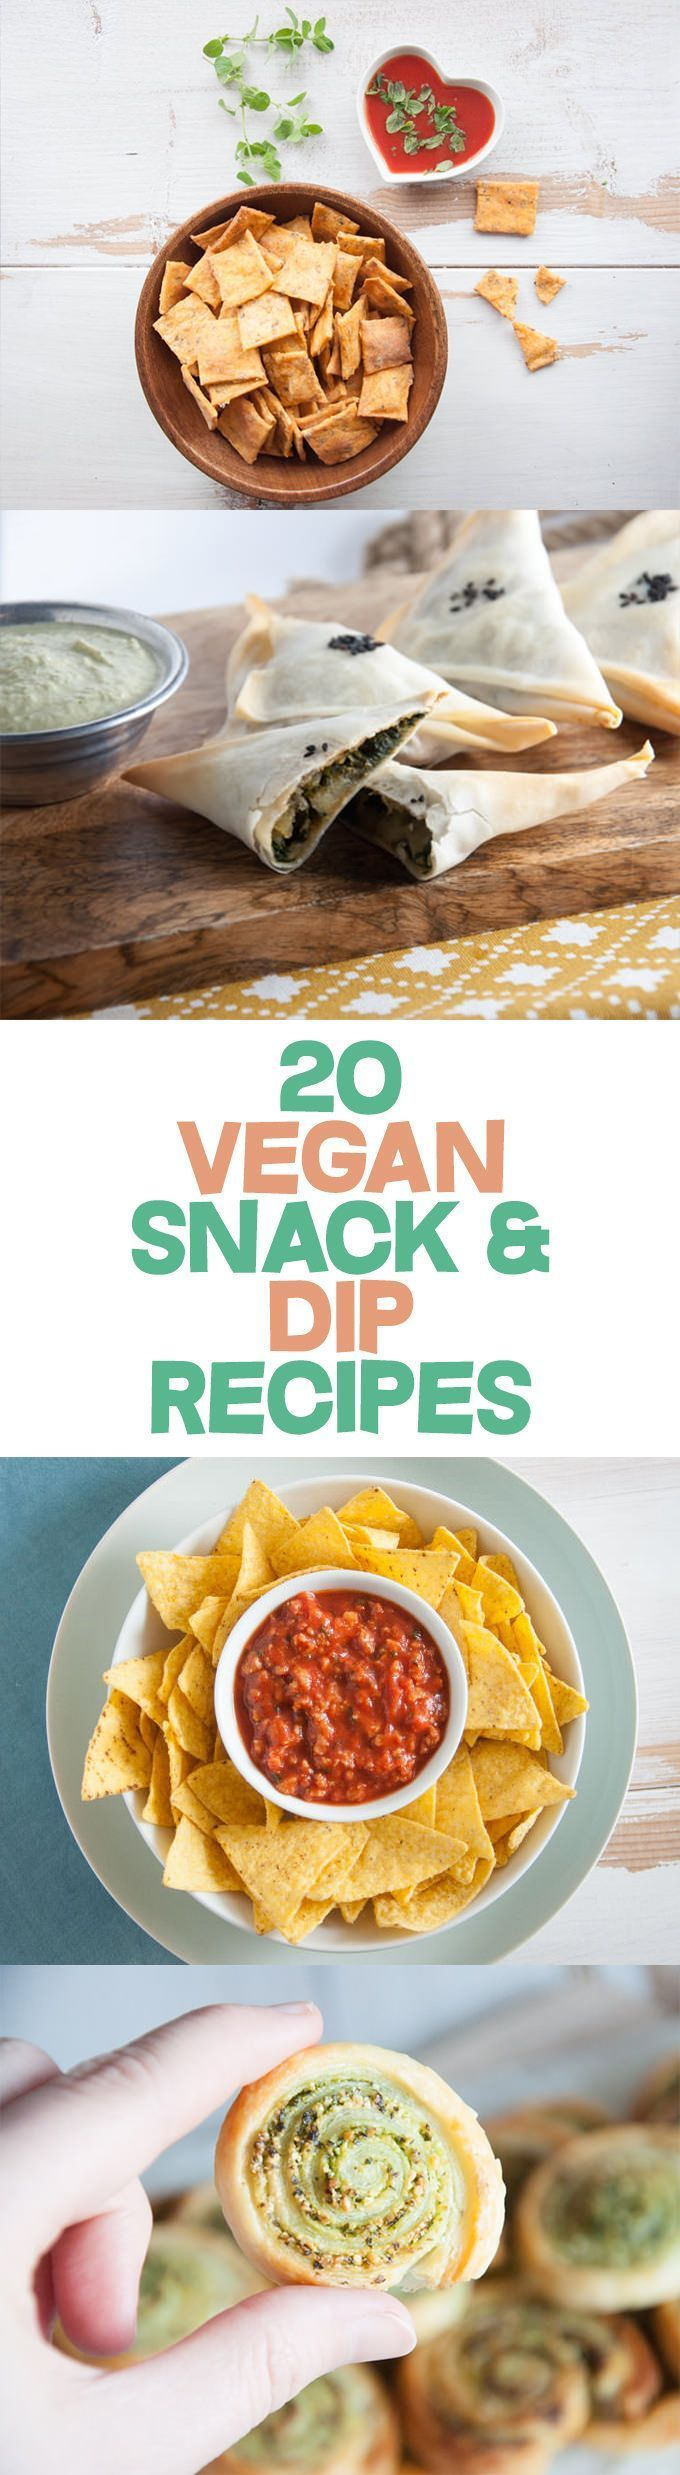 20 Vegan Snack And Dip. Talk about making healthy snacking with plant-based ingredients easy. Some delicious bite-sized sweet and savory snack recipes for anyone.  Some of the vegan recipes that are included: crackers, breadsticks, calzones, pinwheels, dips, and spreads.